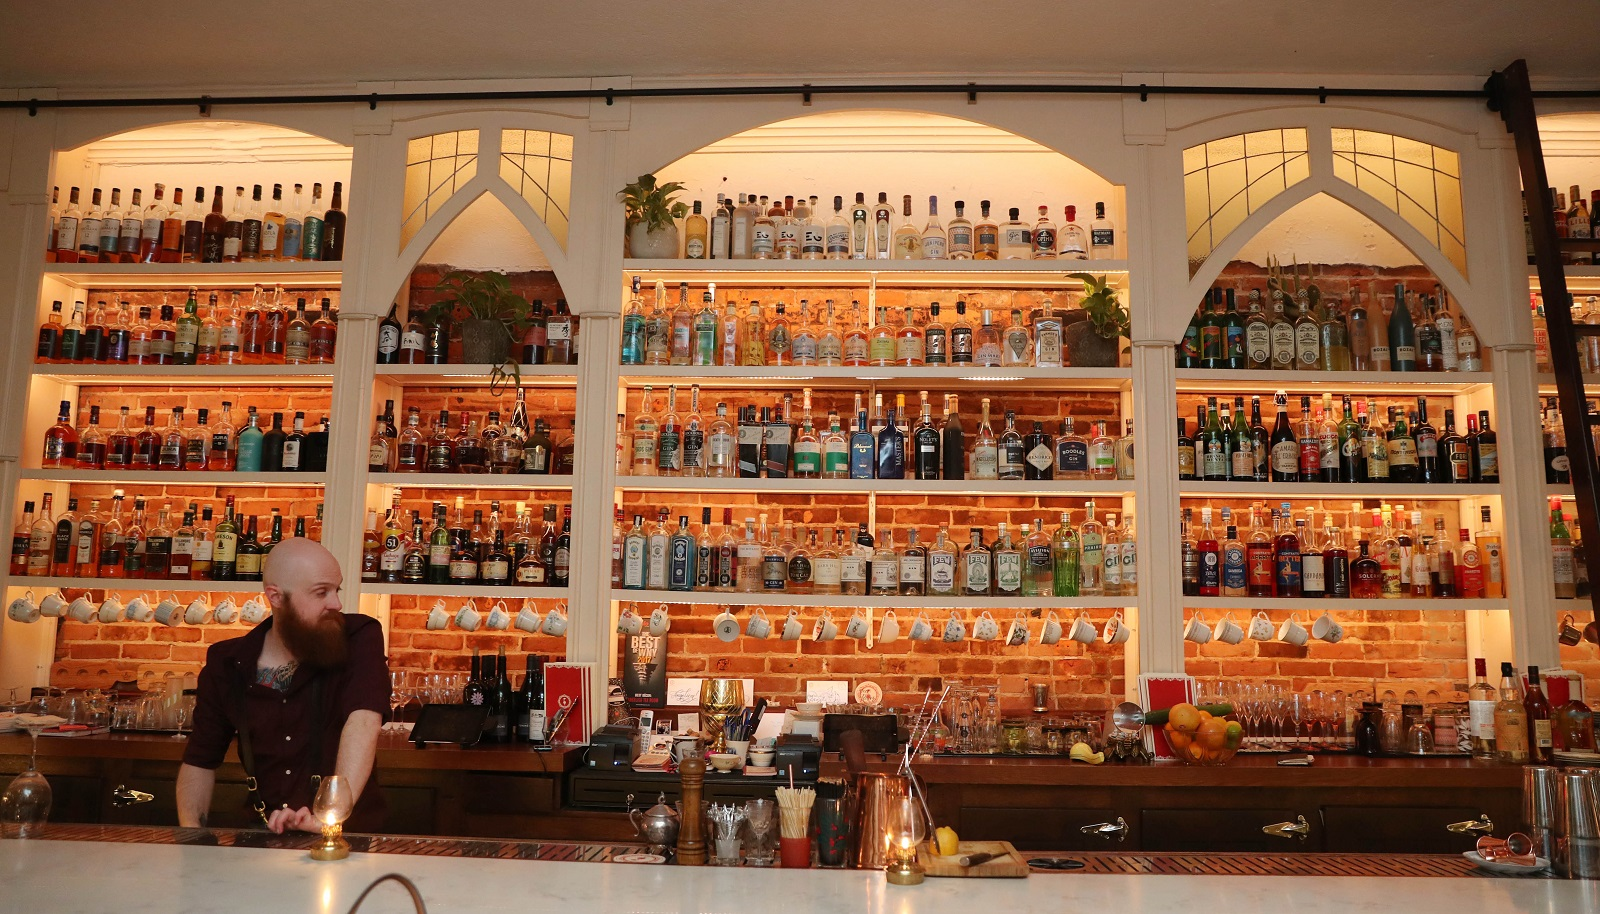 According to bloggers: Where to grab drinks in Buffalo